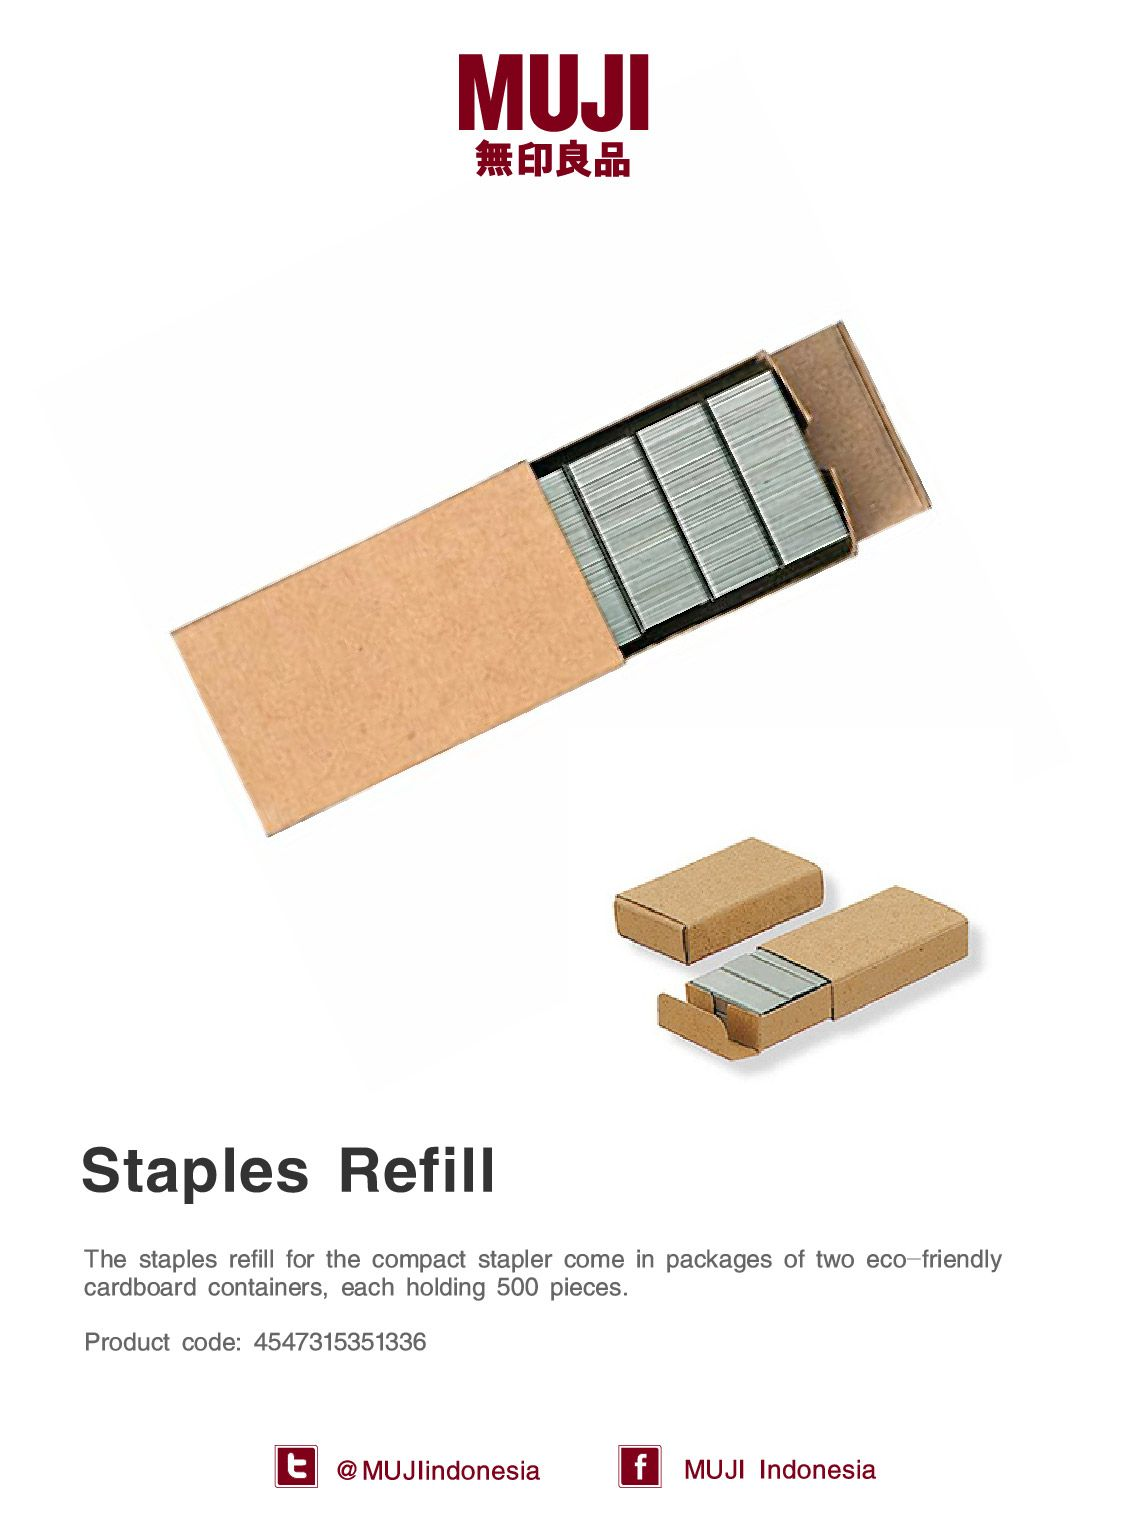 Muji Staples Refill For The Compact Stapler Come In Packages Of Two Eco Friendly Cardboard Containers Muji Packaging Refill